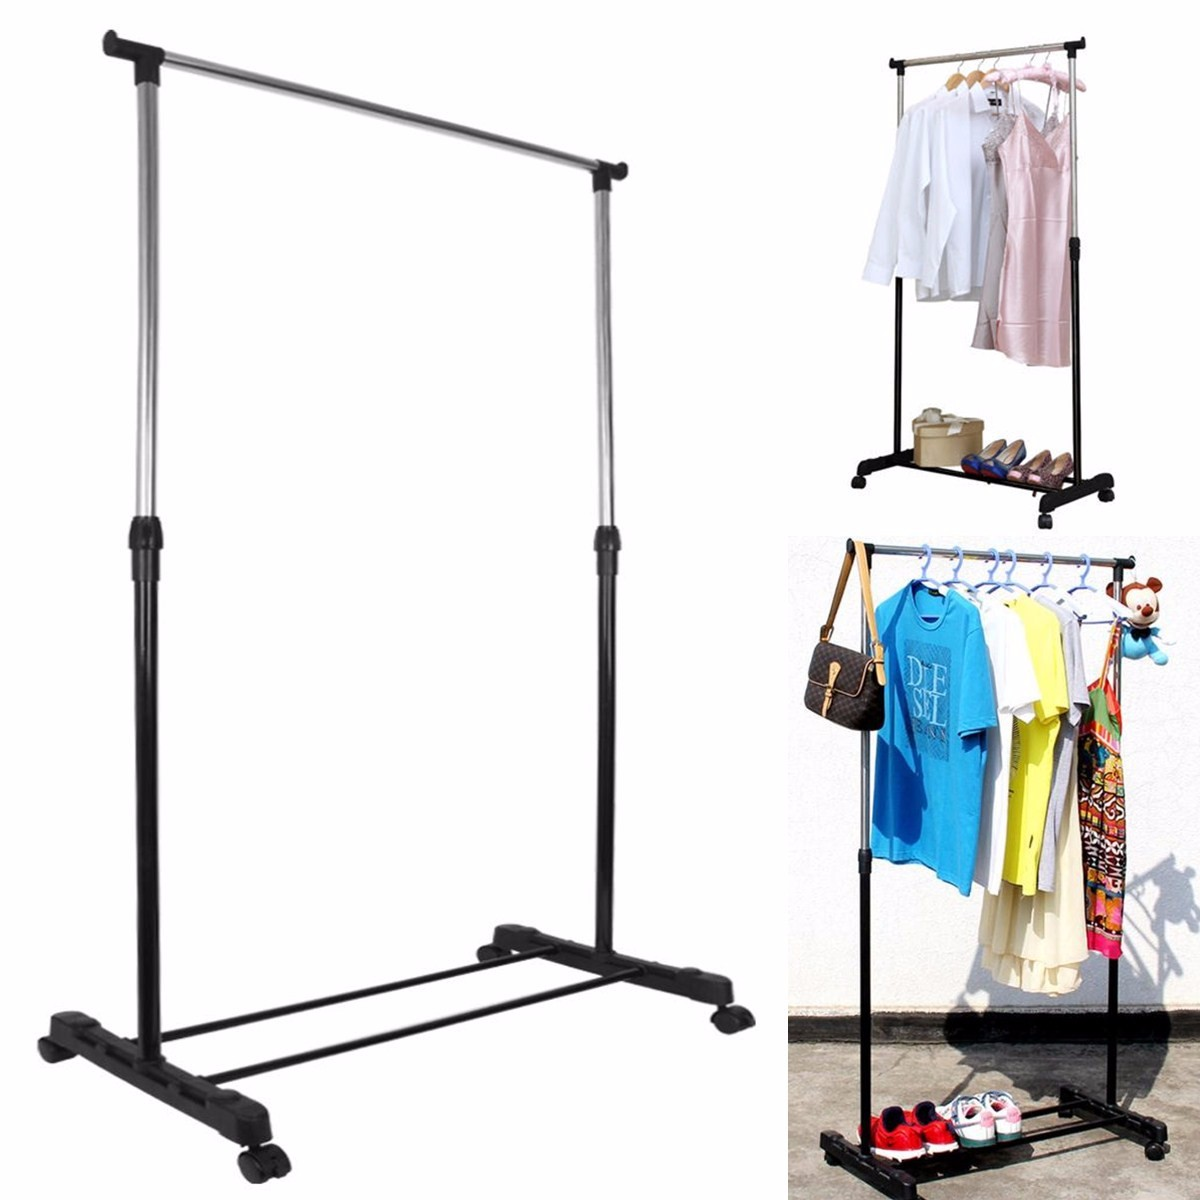 Adjustable Garment Rack Portable Heavy Duty  Clothes Stand Hanger Mobile On Wheel Today's Special Offer!